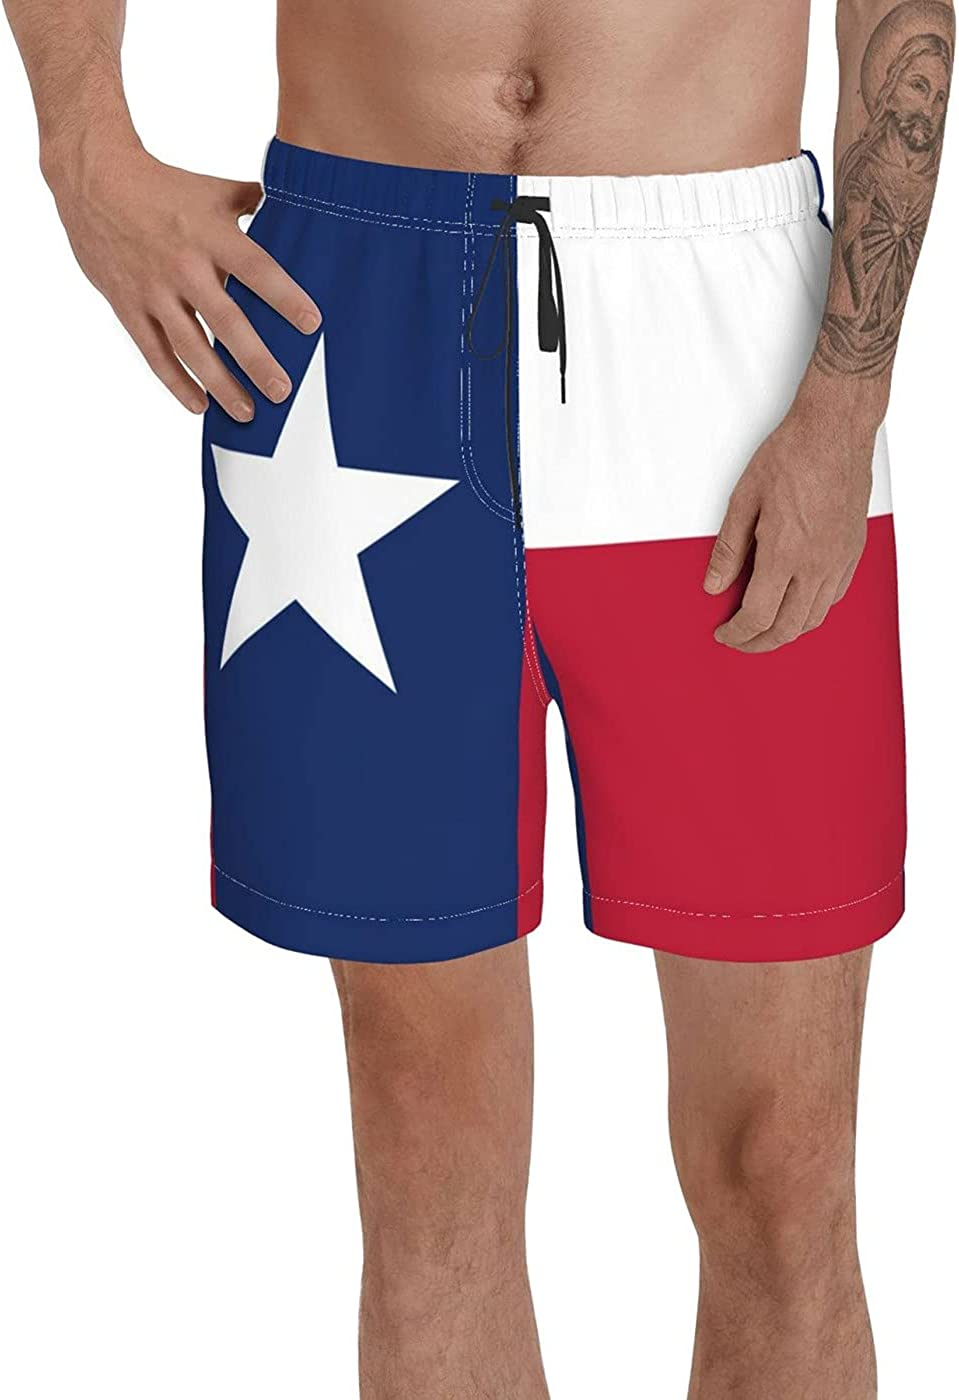 Count Texas State Flag Men's 3D Printed Funny Summer Quick Dry Swim Short Board Shorts with